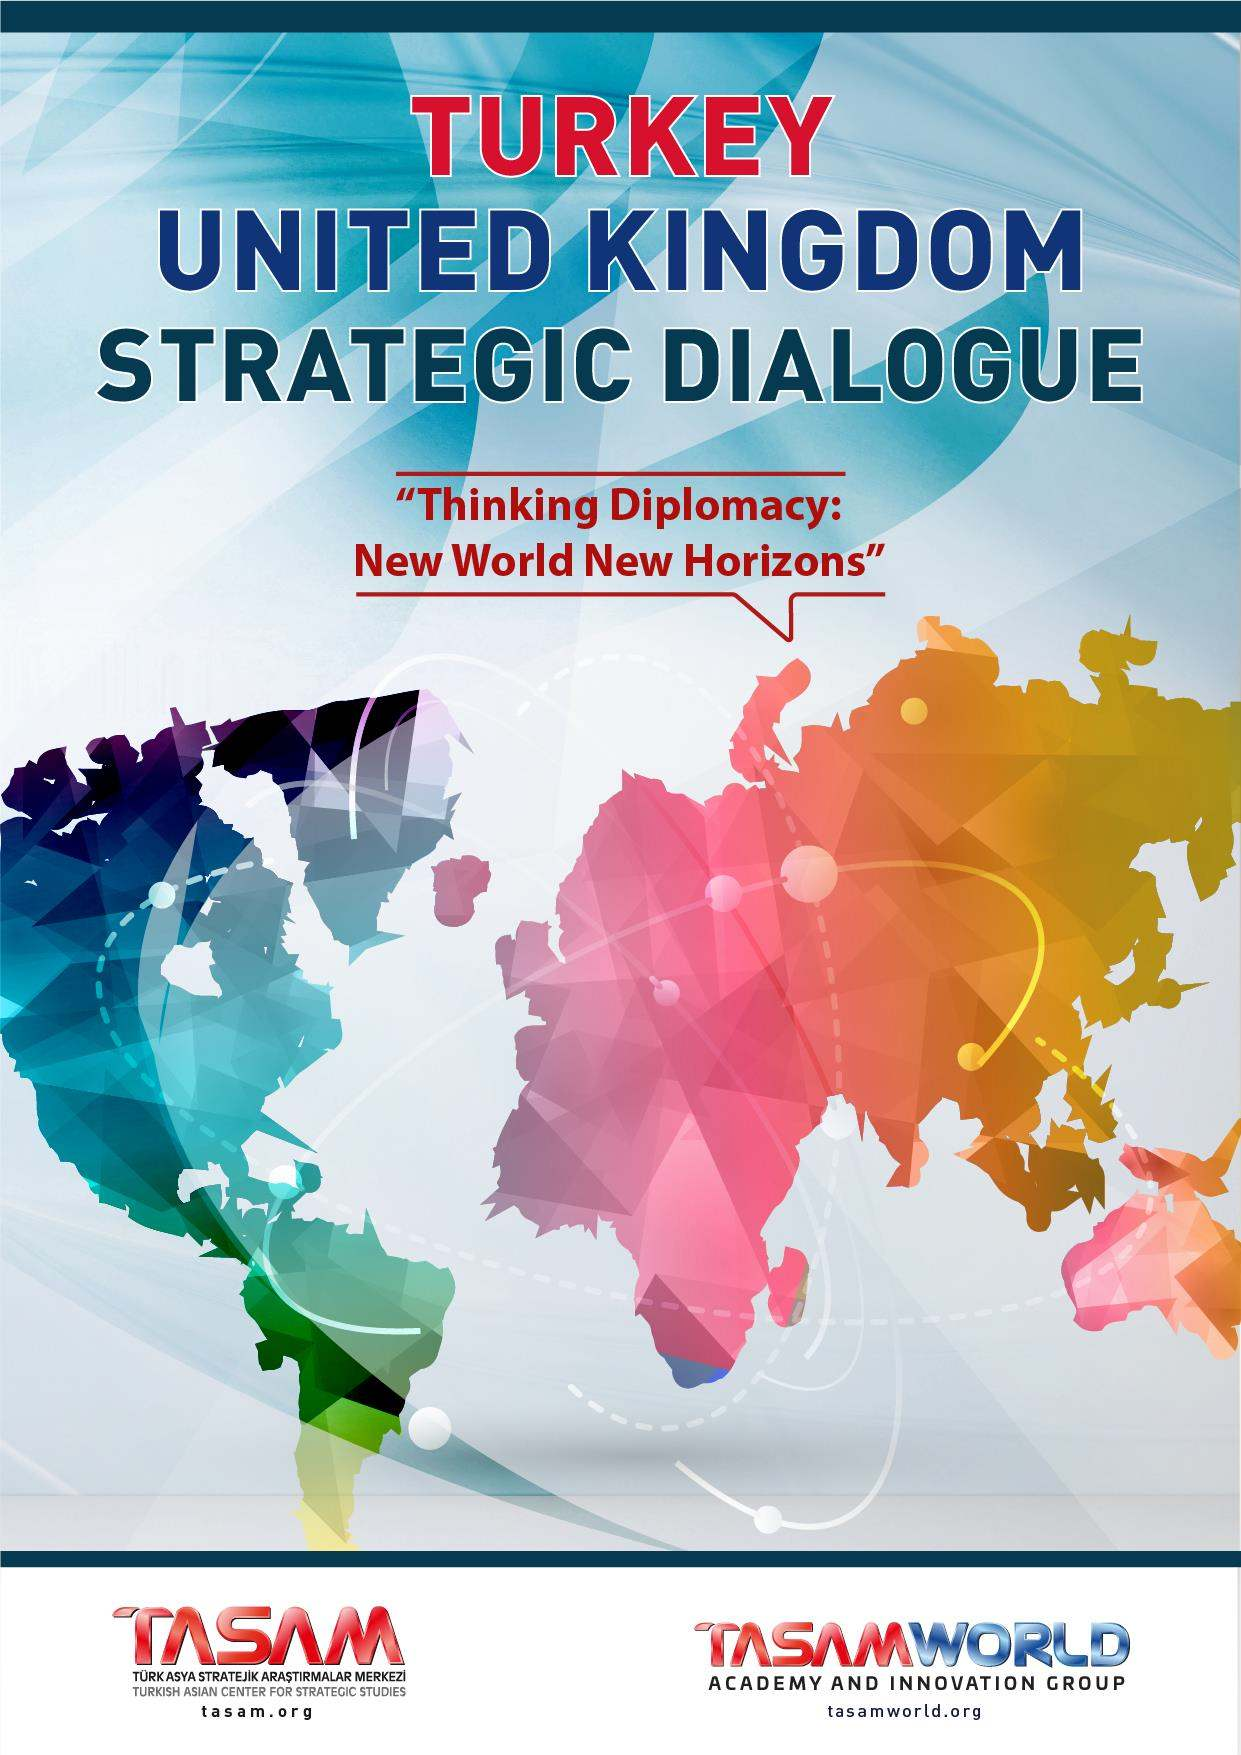 Turkey - United Kingdom Strategic Dialogue